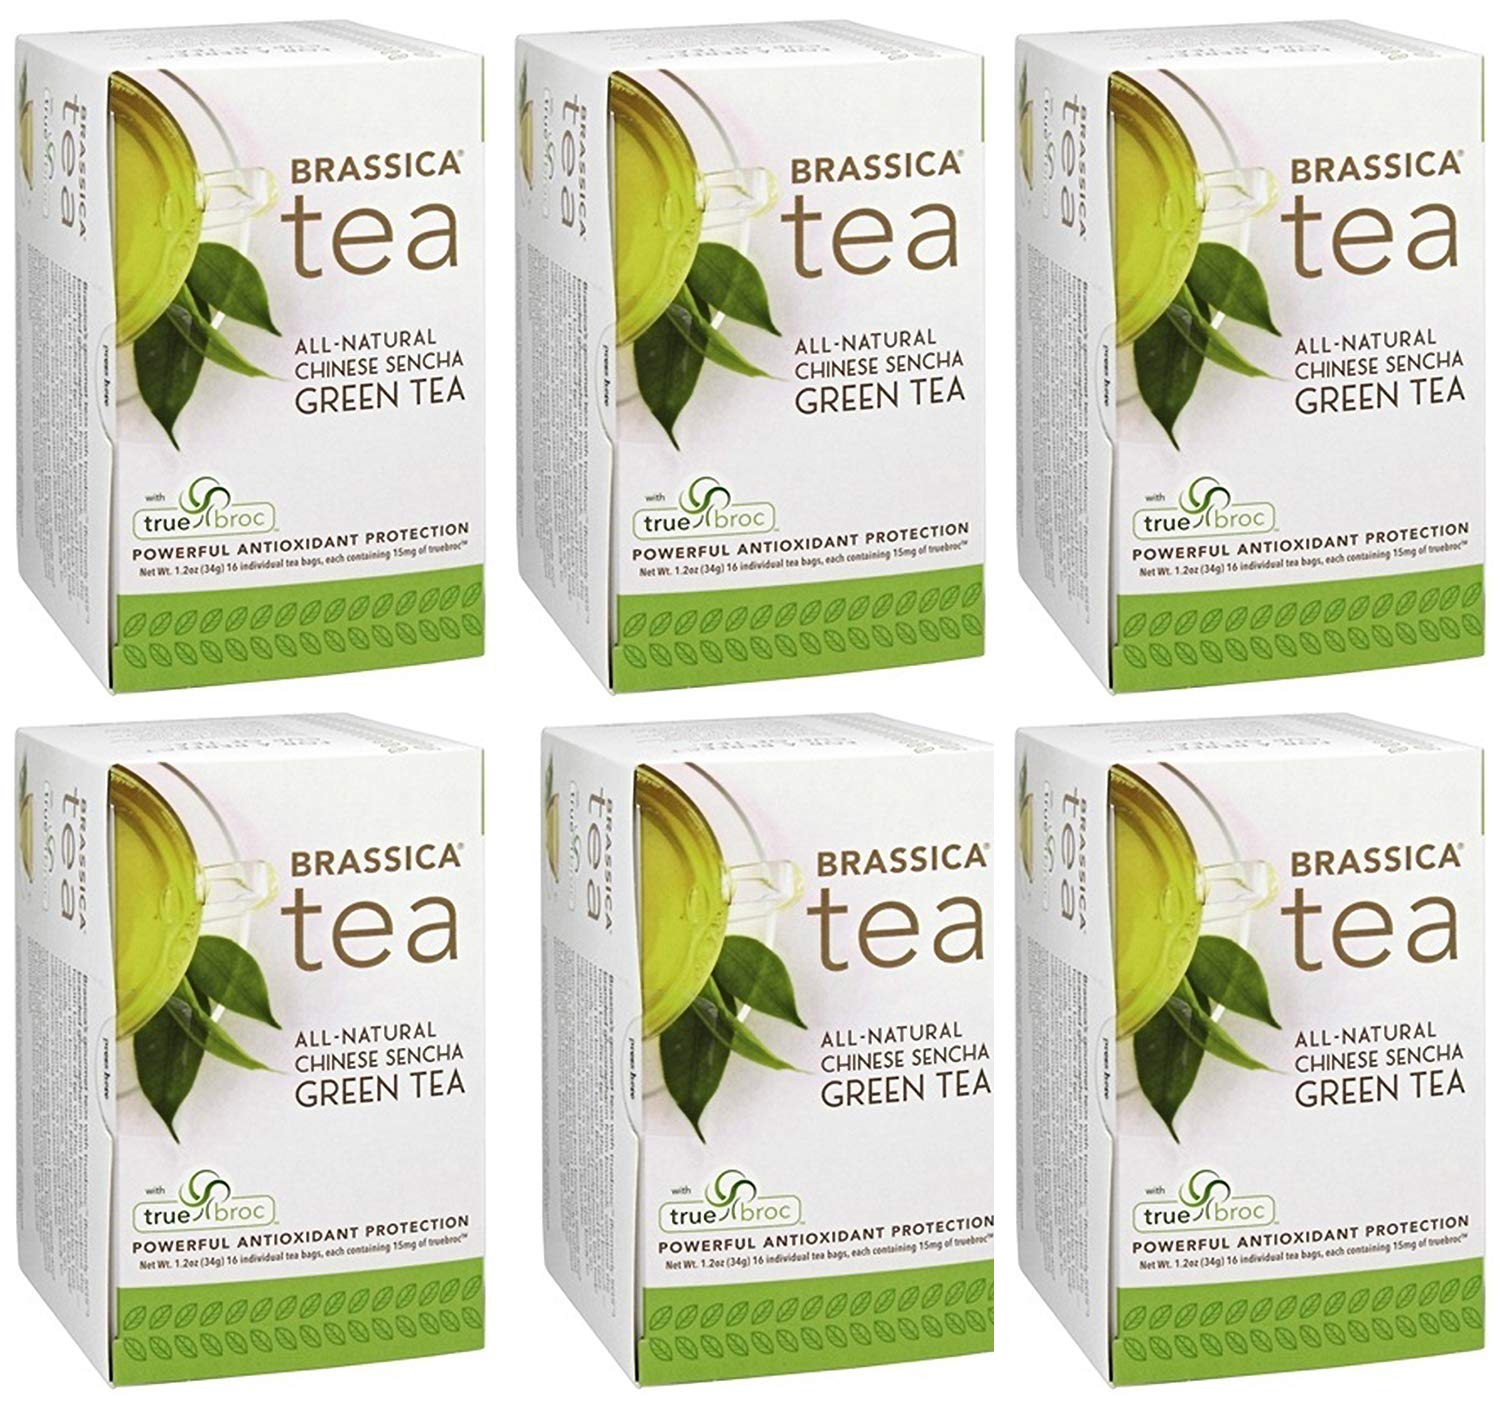 Brassica Tea Sencha Green Tea with truebroc, 16 Tea Bags (6 Pack)